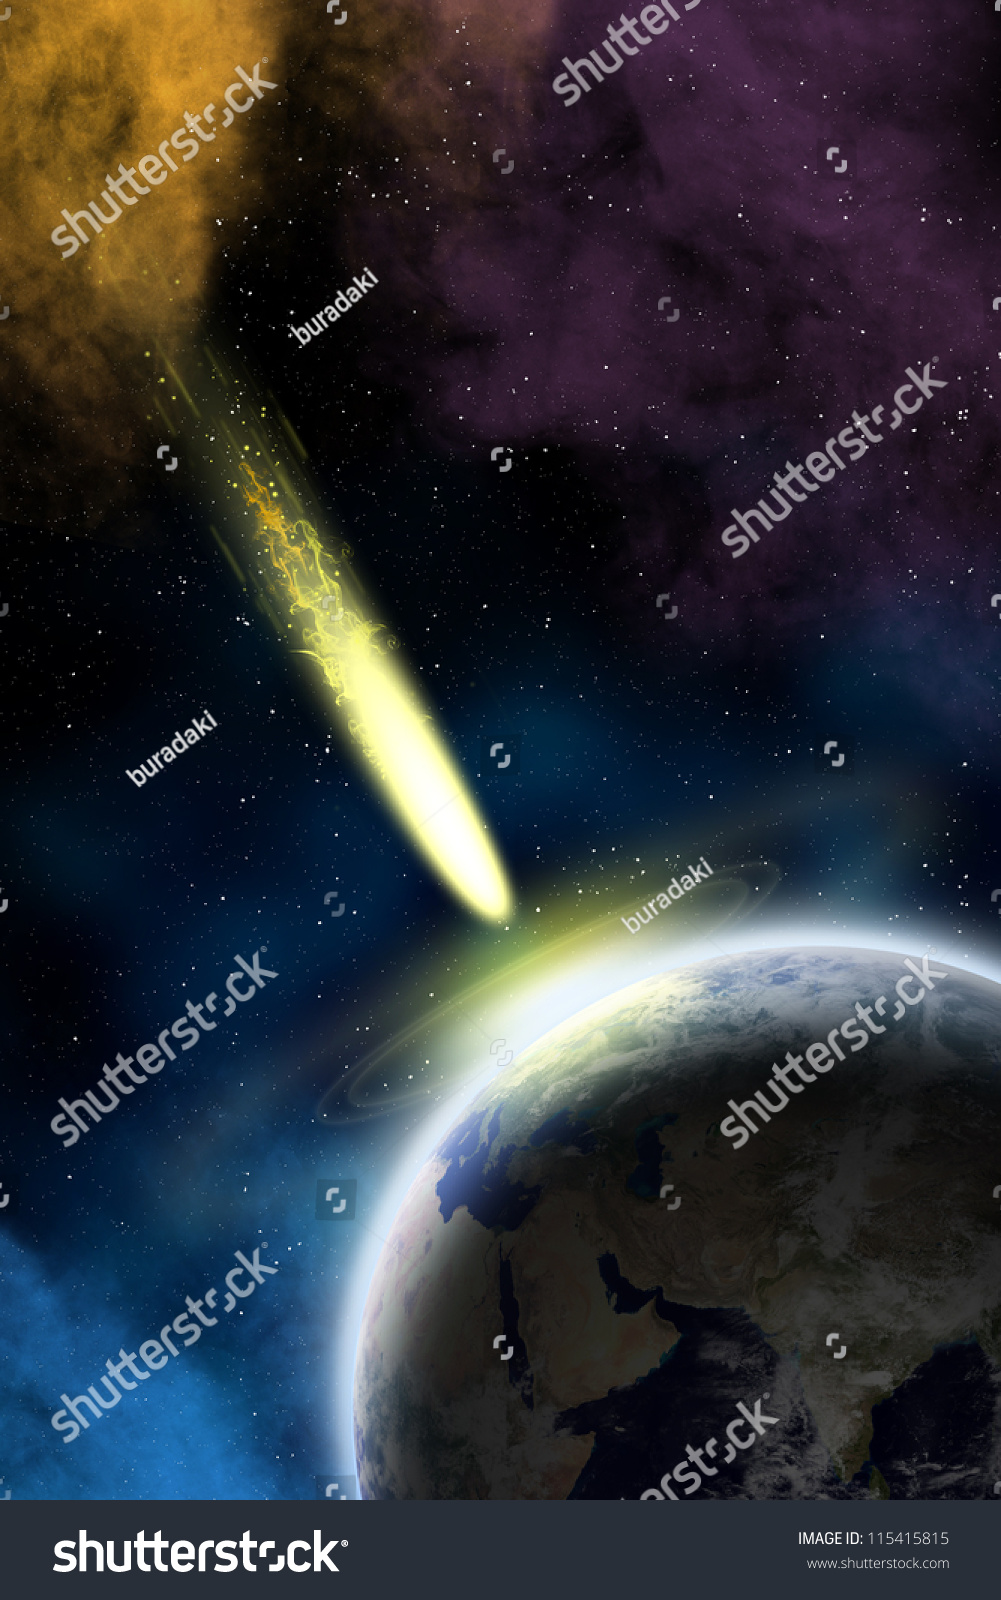 Earth space flying asteroid asteroid impact stock for Flying spaces